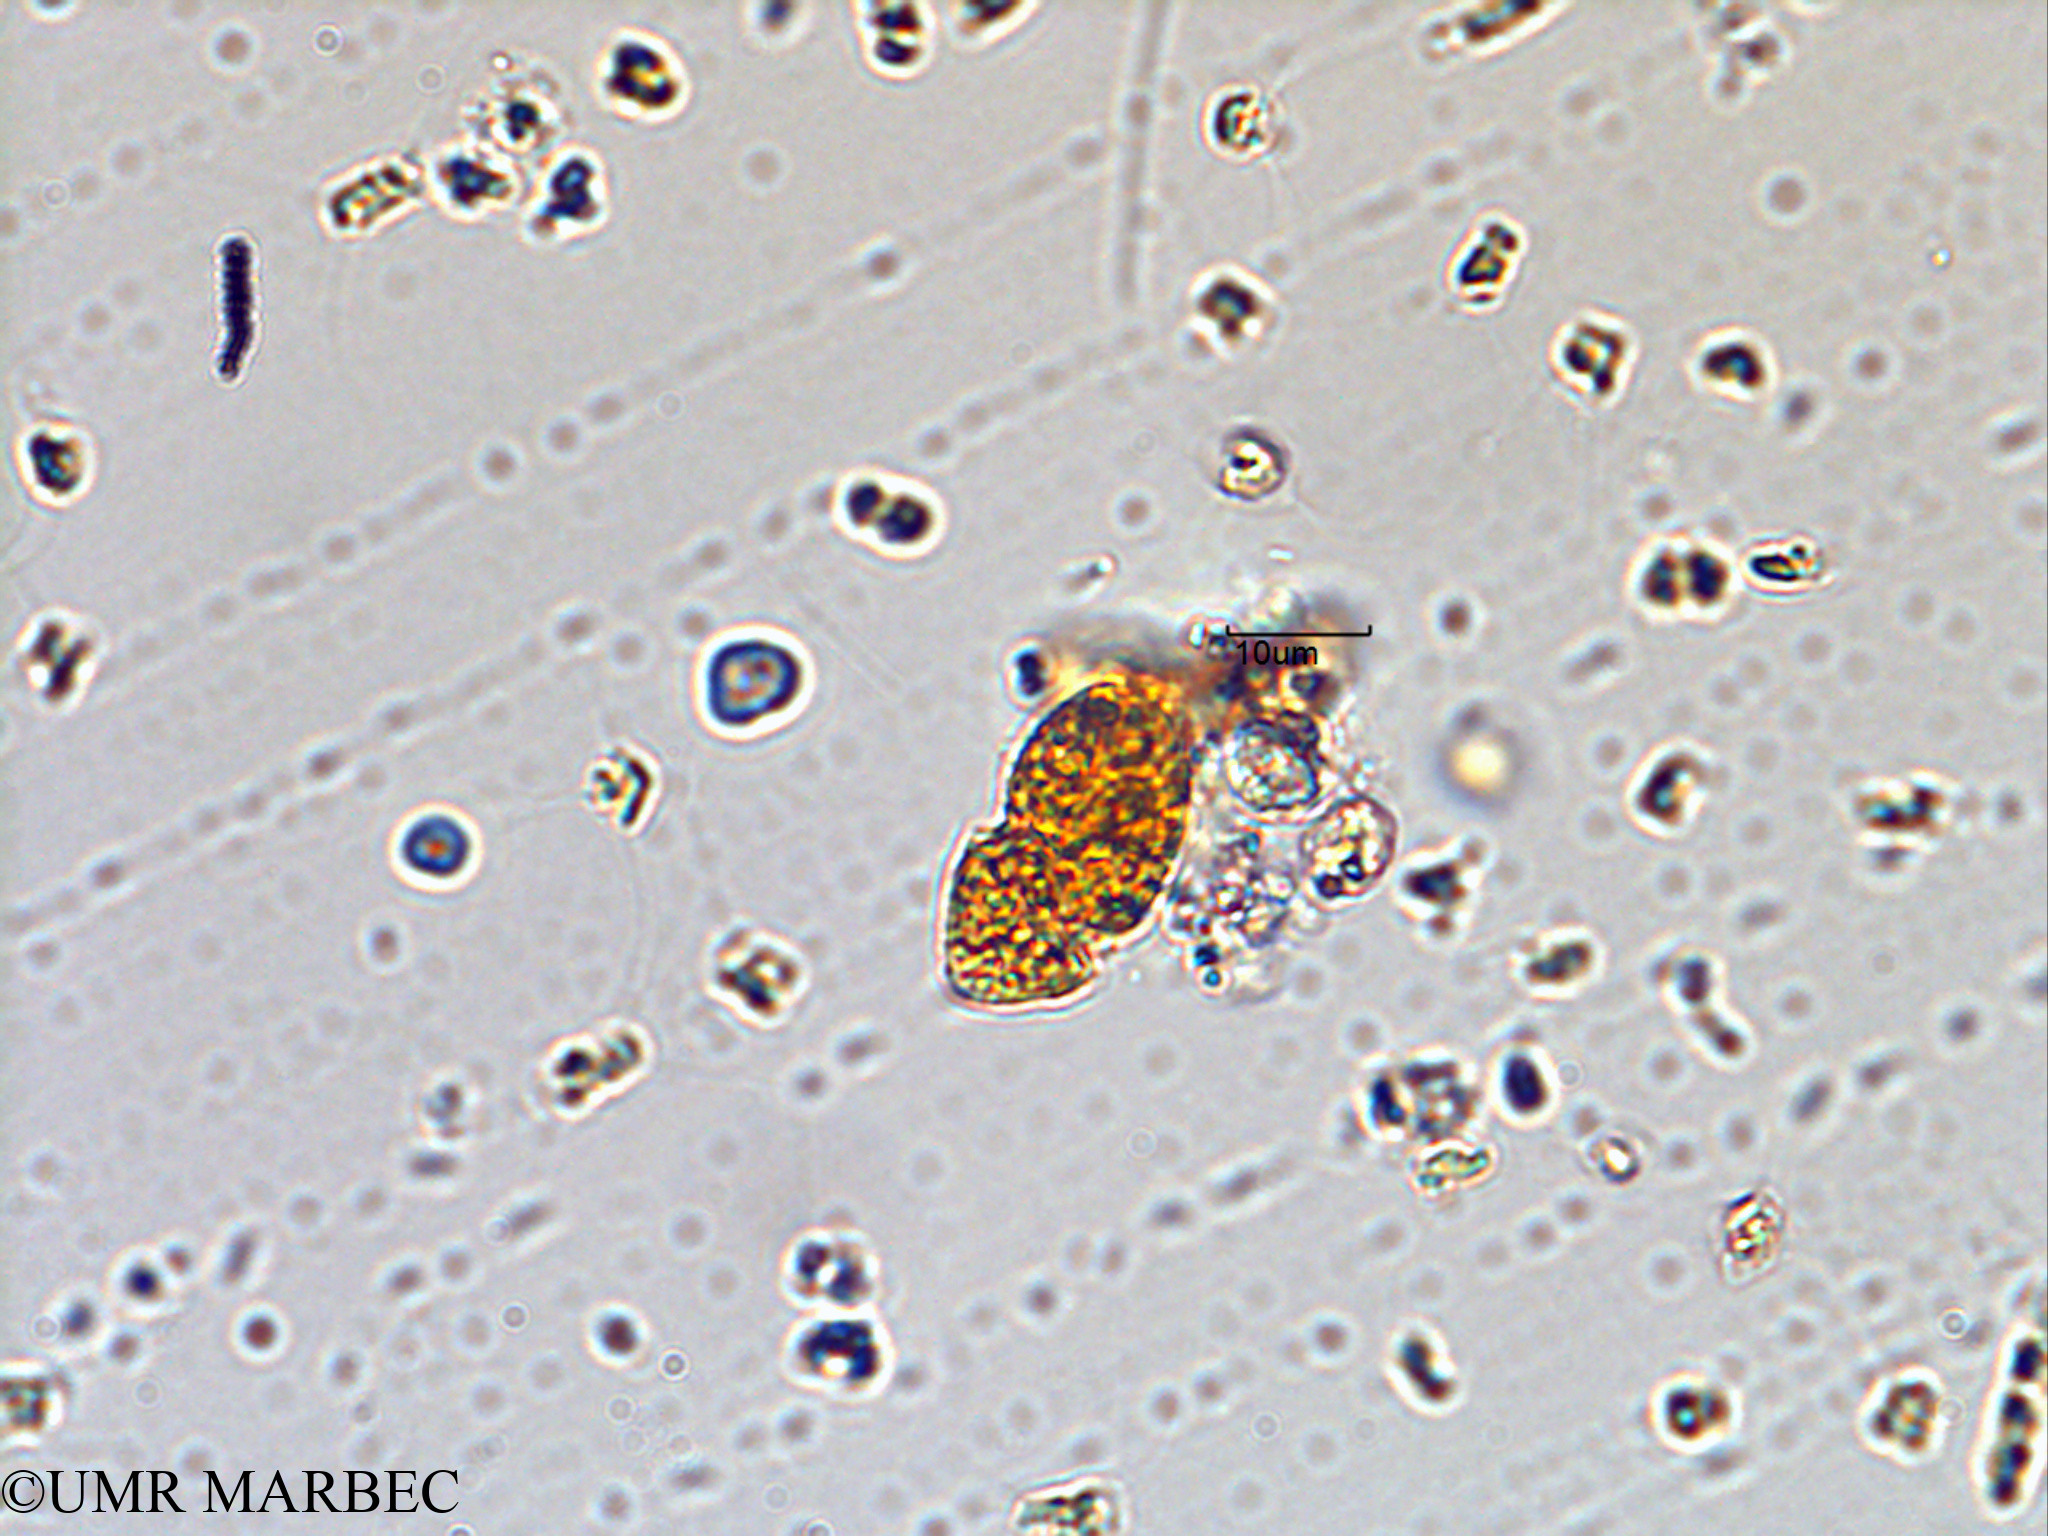 phyto/Scattered_Islands/juan_de_nova/COMMA2 November 2013/Katodinium sp (ancien Gyrodinium -1).tif(copy).jpg